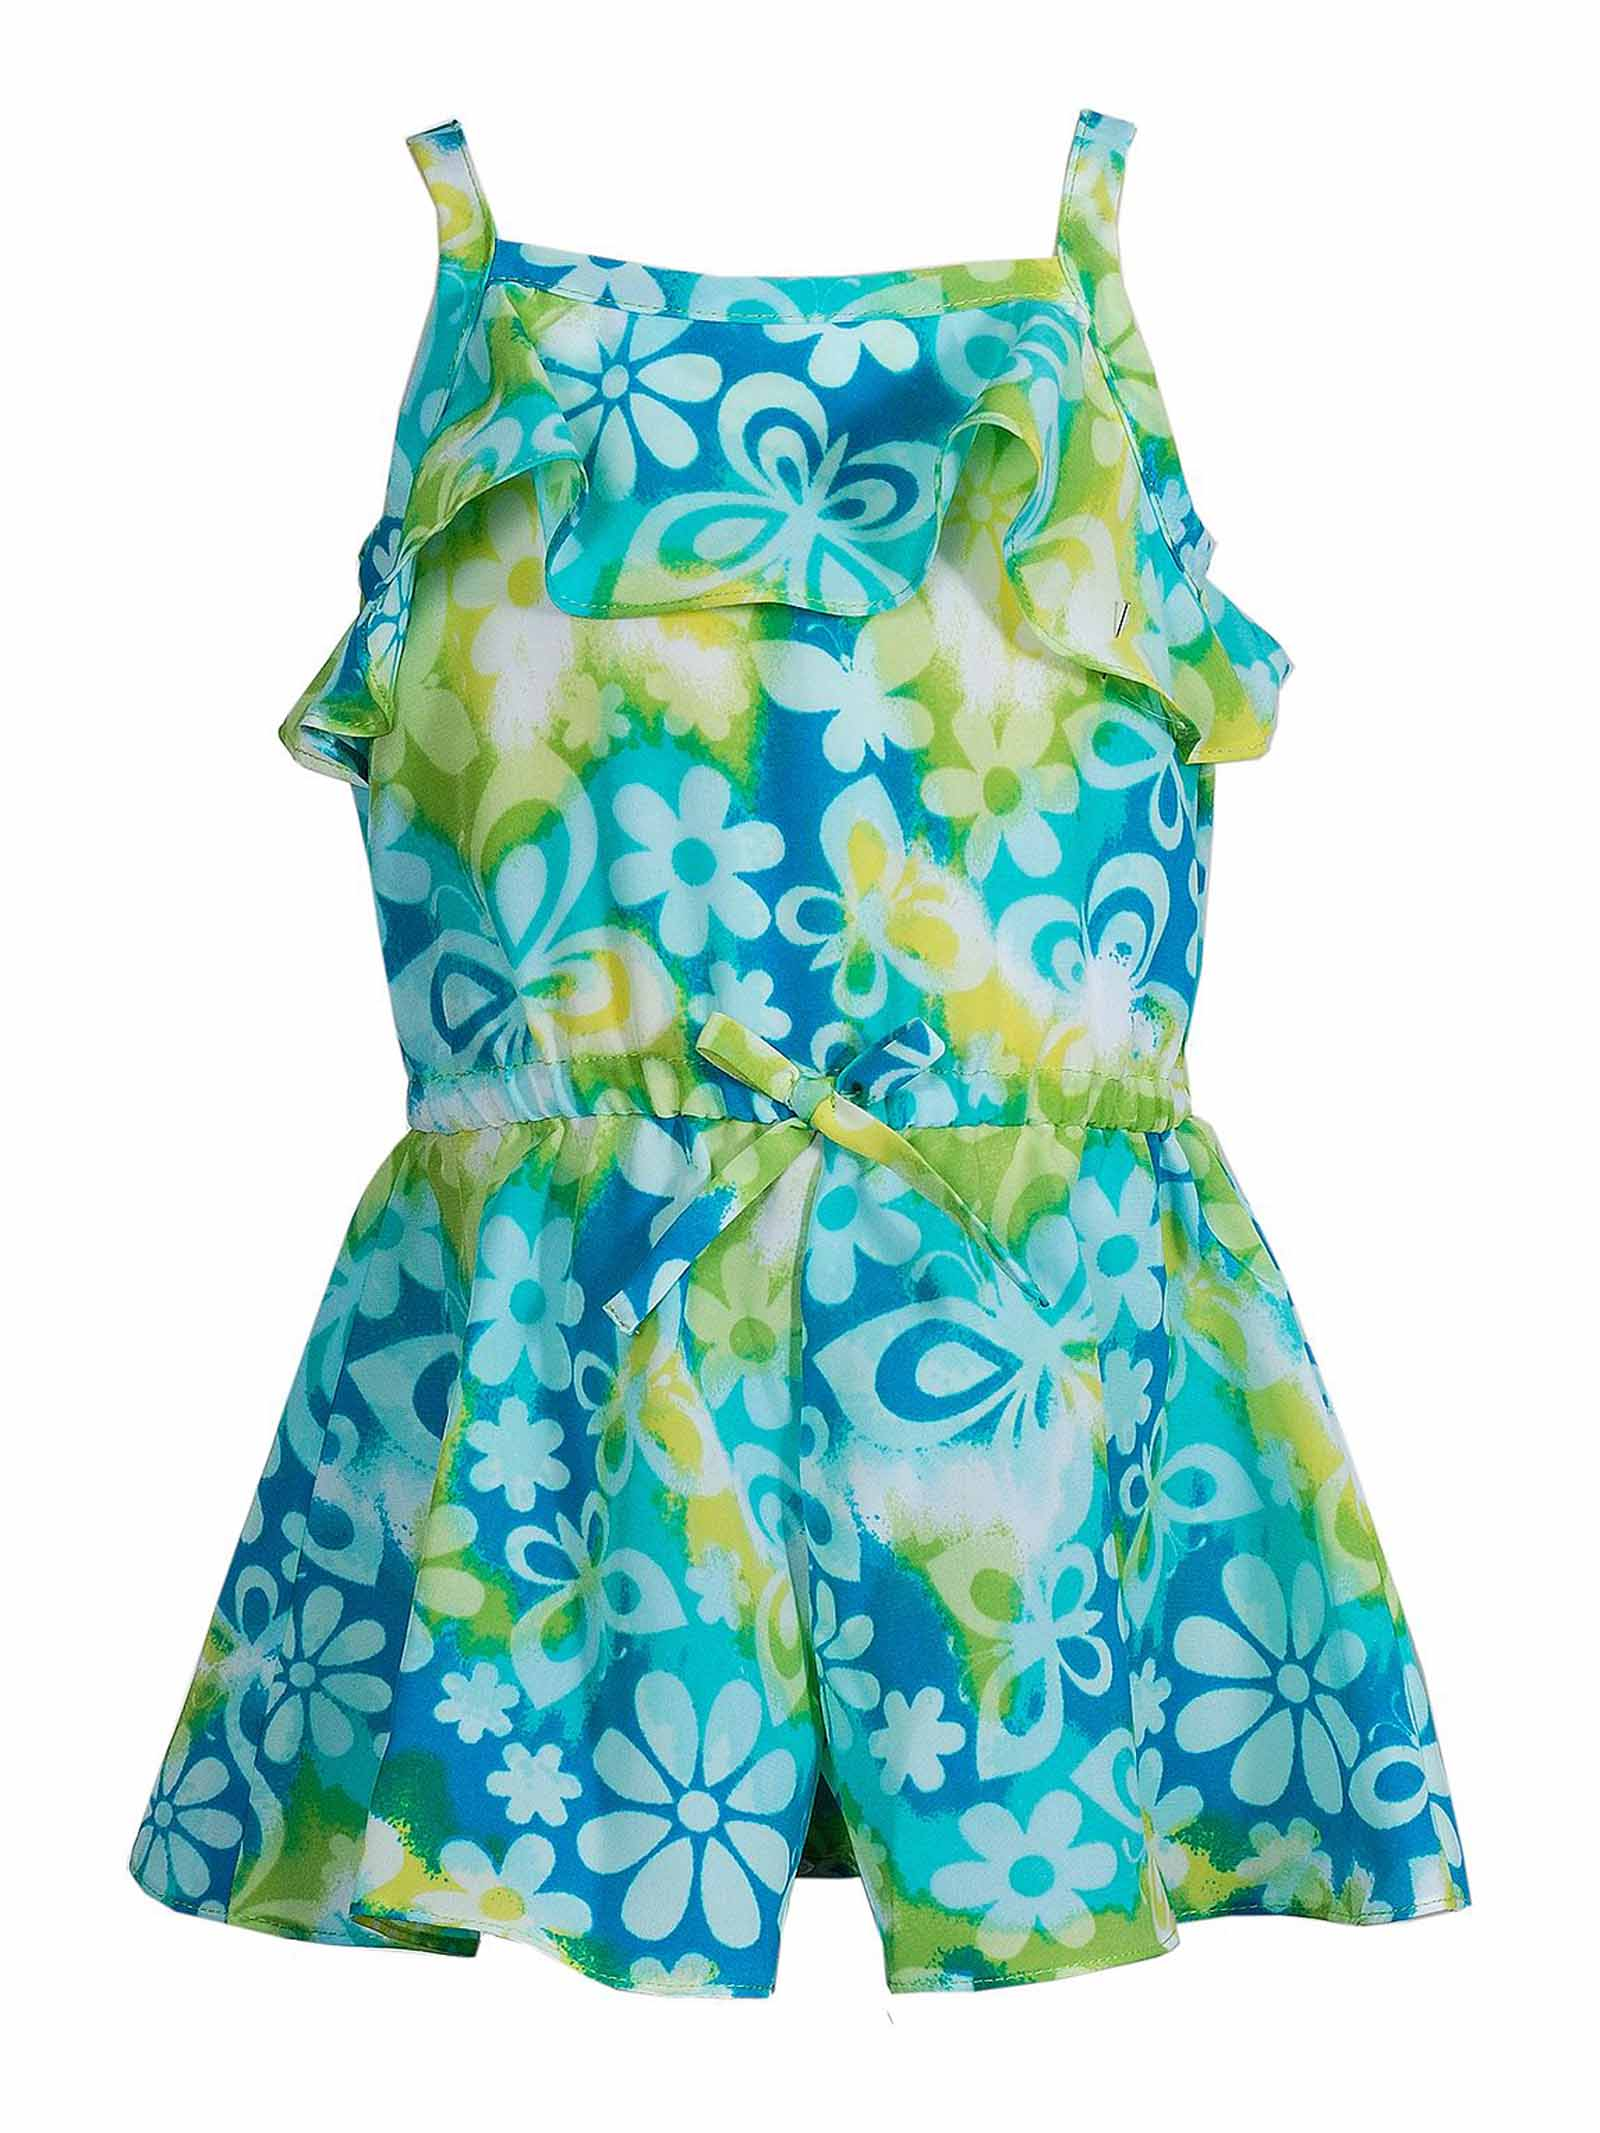 753f5d01aa1c Youngland Baby Girls Floral Tie Dye Skirted 1-Pc Sleeveless Blue ...